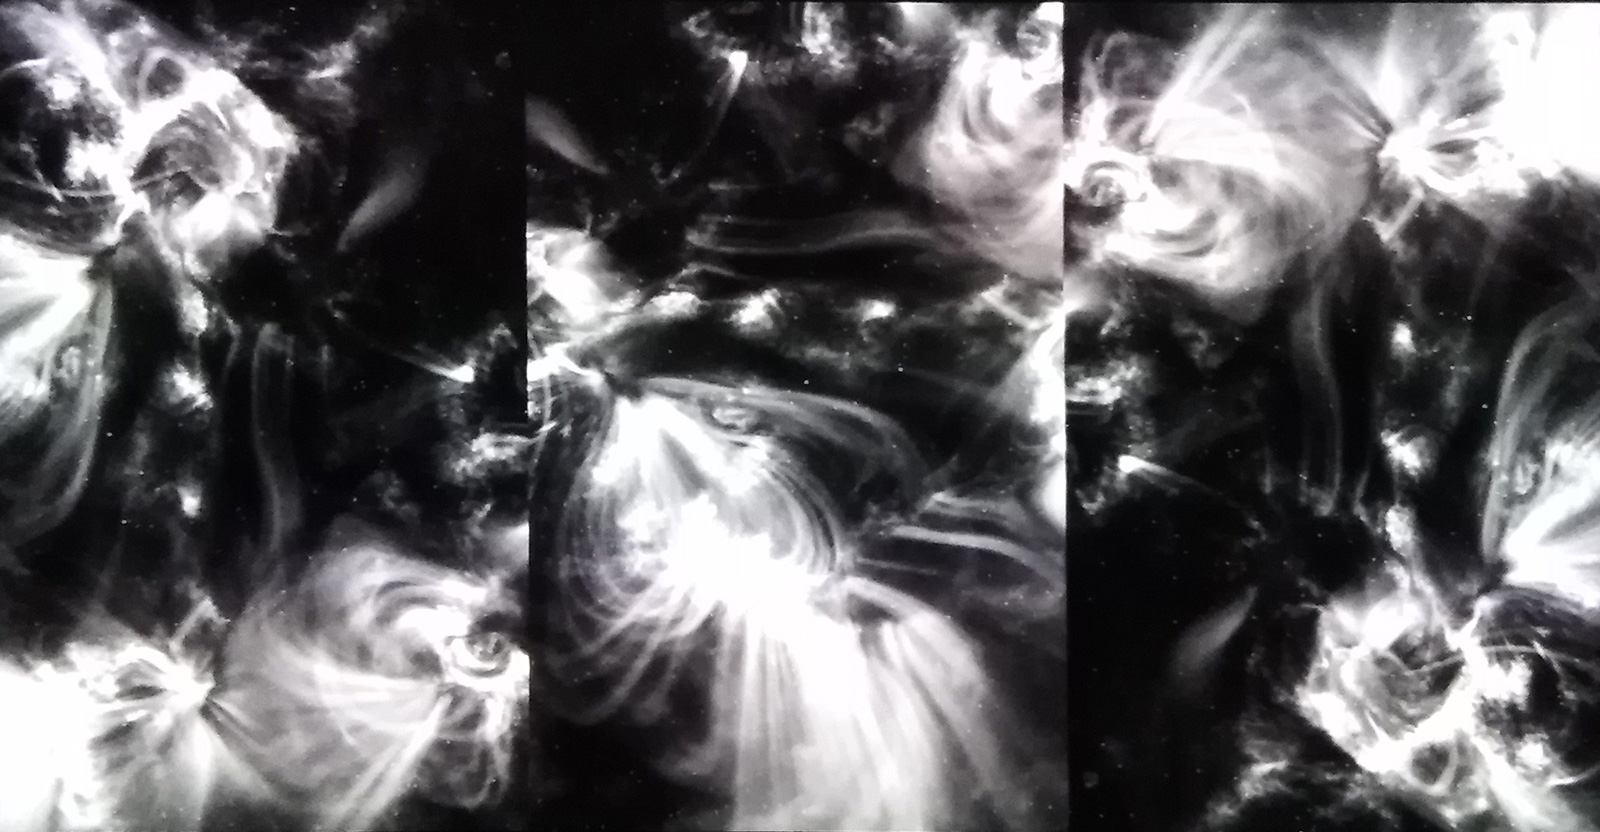 A three panel blakc and white abstract video image of swirling forces.